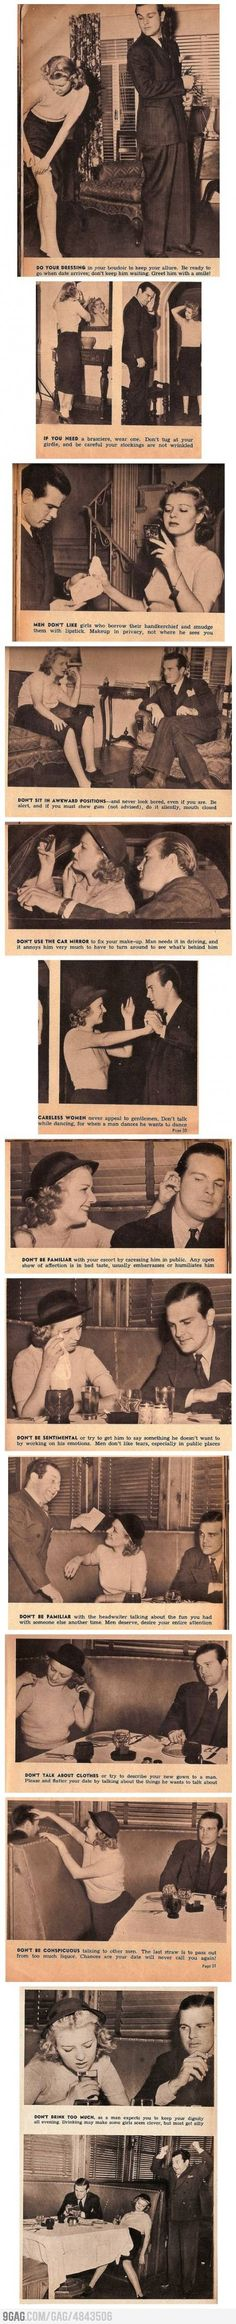 "Dating Advice for Women circa 1950  ""Don't sit in awkward positions"" does seem like rather good advice.... Love his face in the photos"